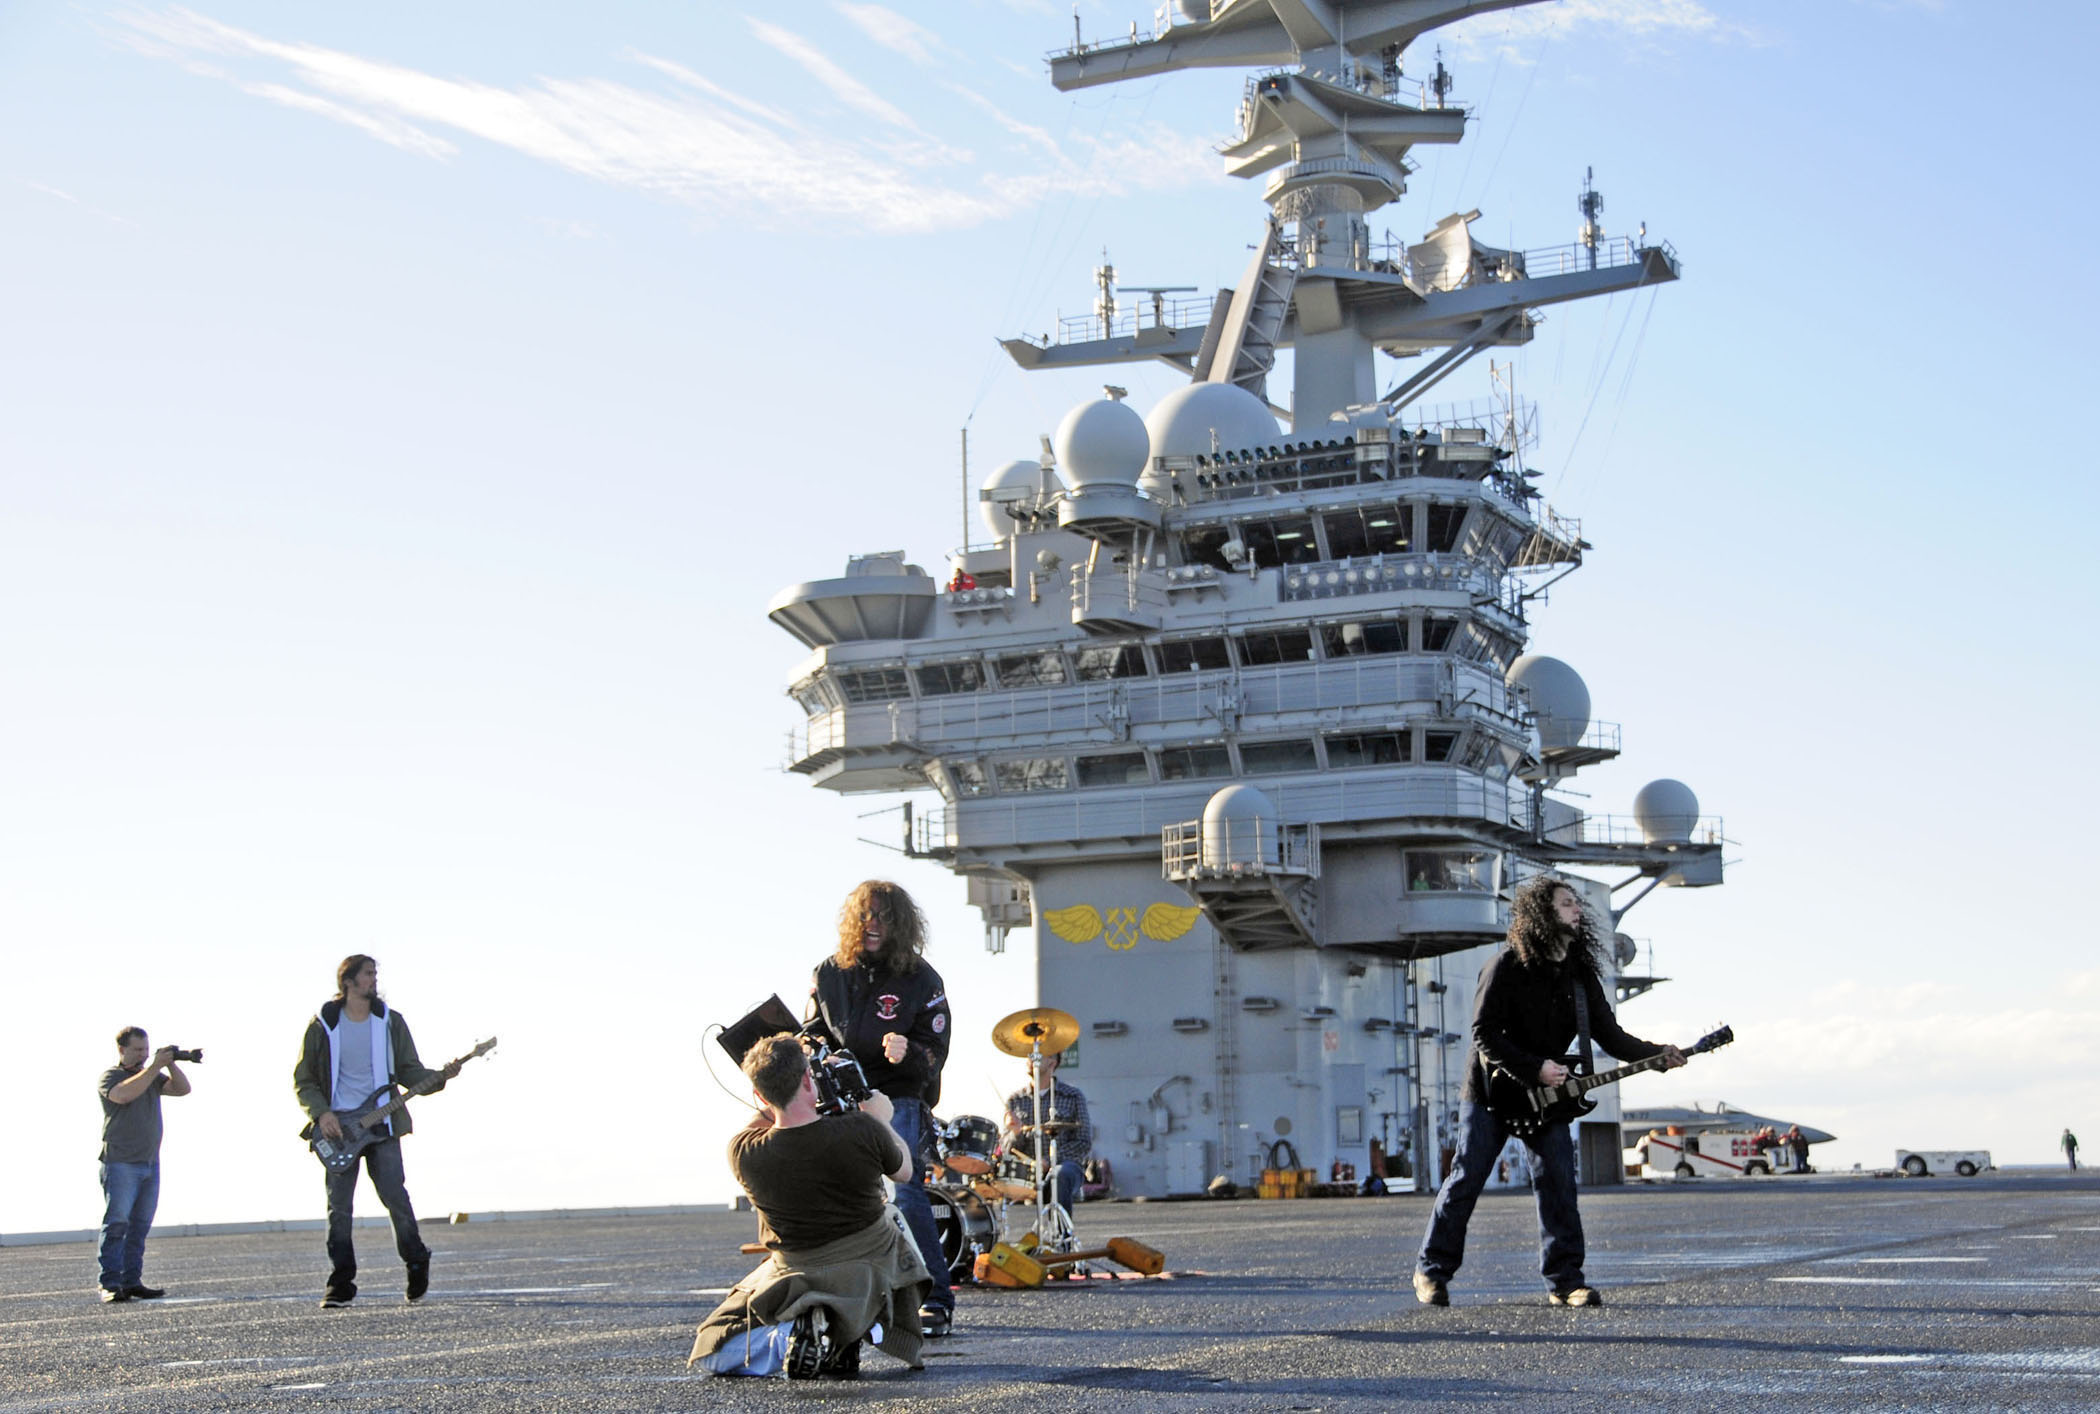 US_Navy_101201-N-8913A-254_Members_of_the_North_Carolina-based_band_Airiel_Down_film_a_music_video_on_the_flight_deck_of_the_aircraft_carrier_USS_G.jpg